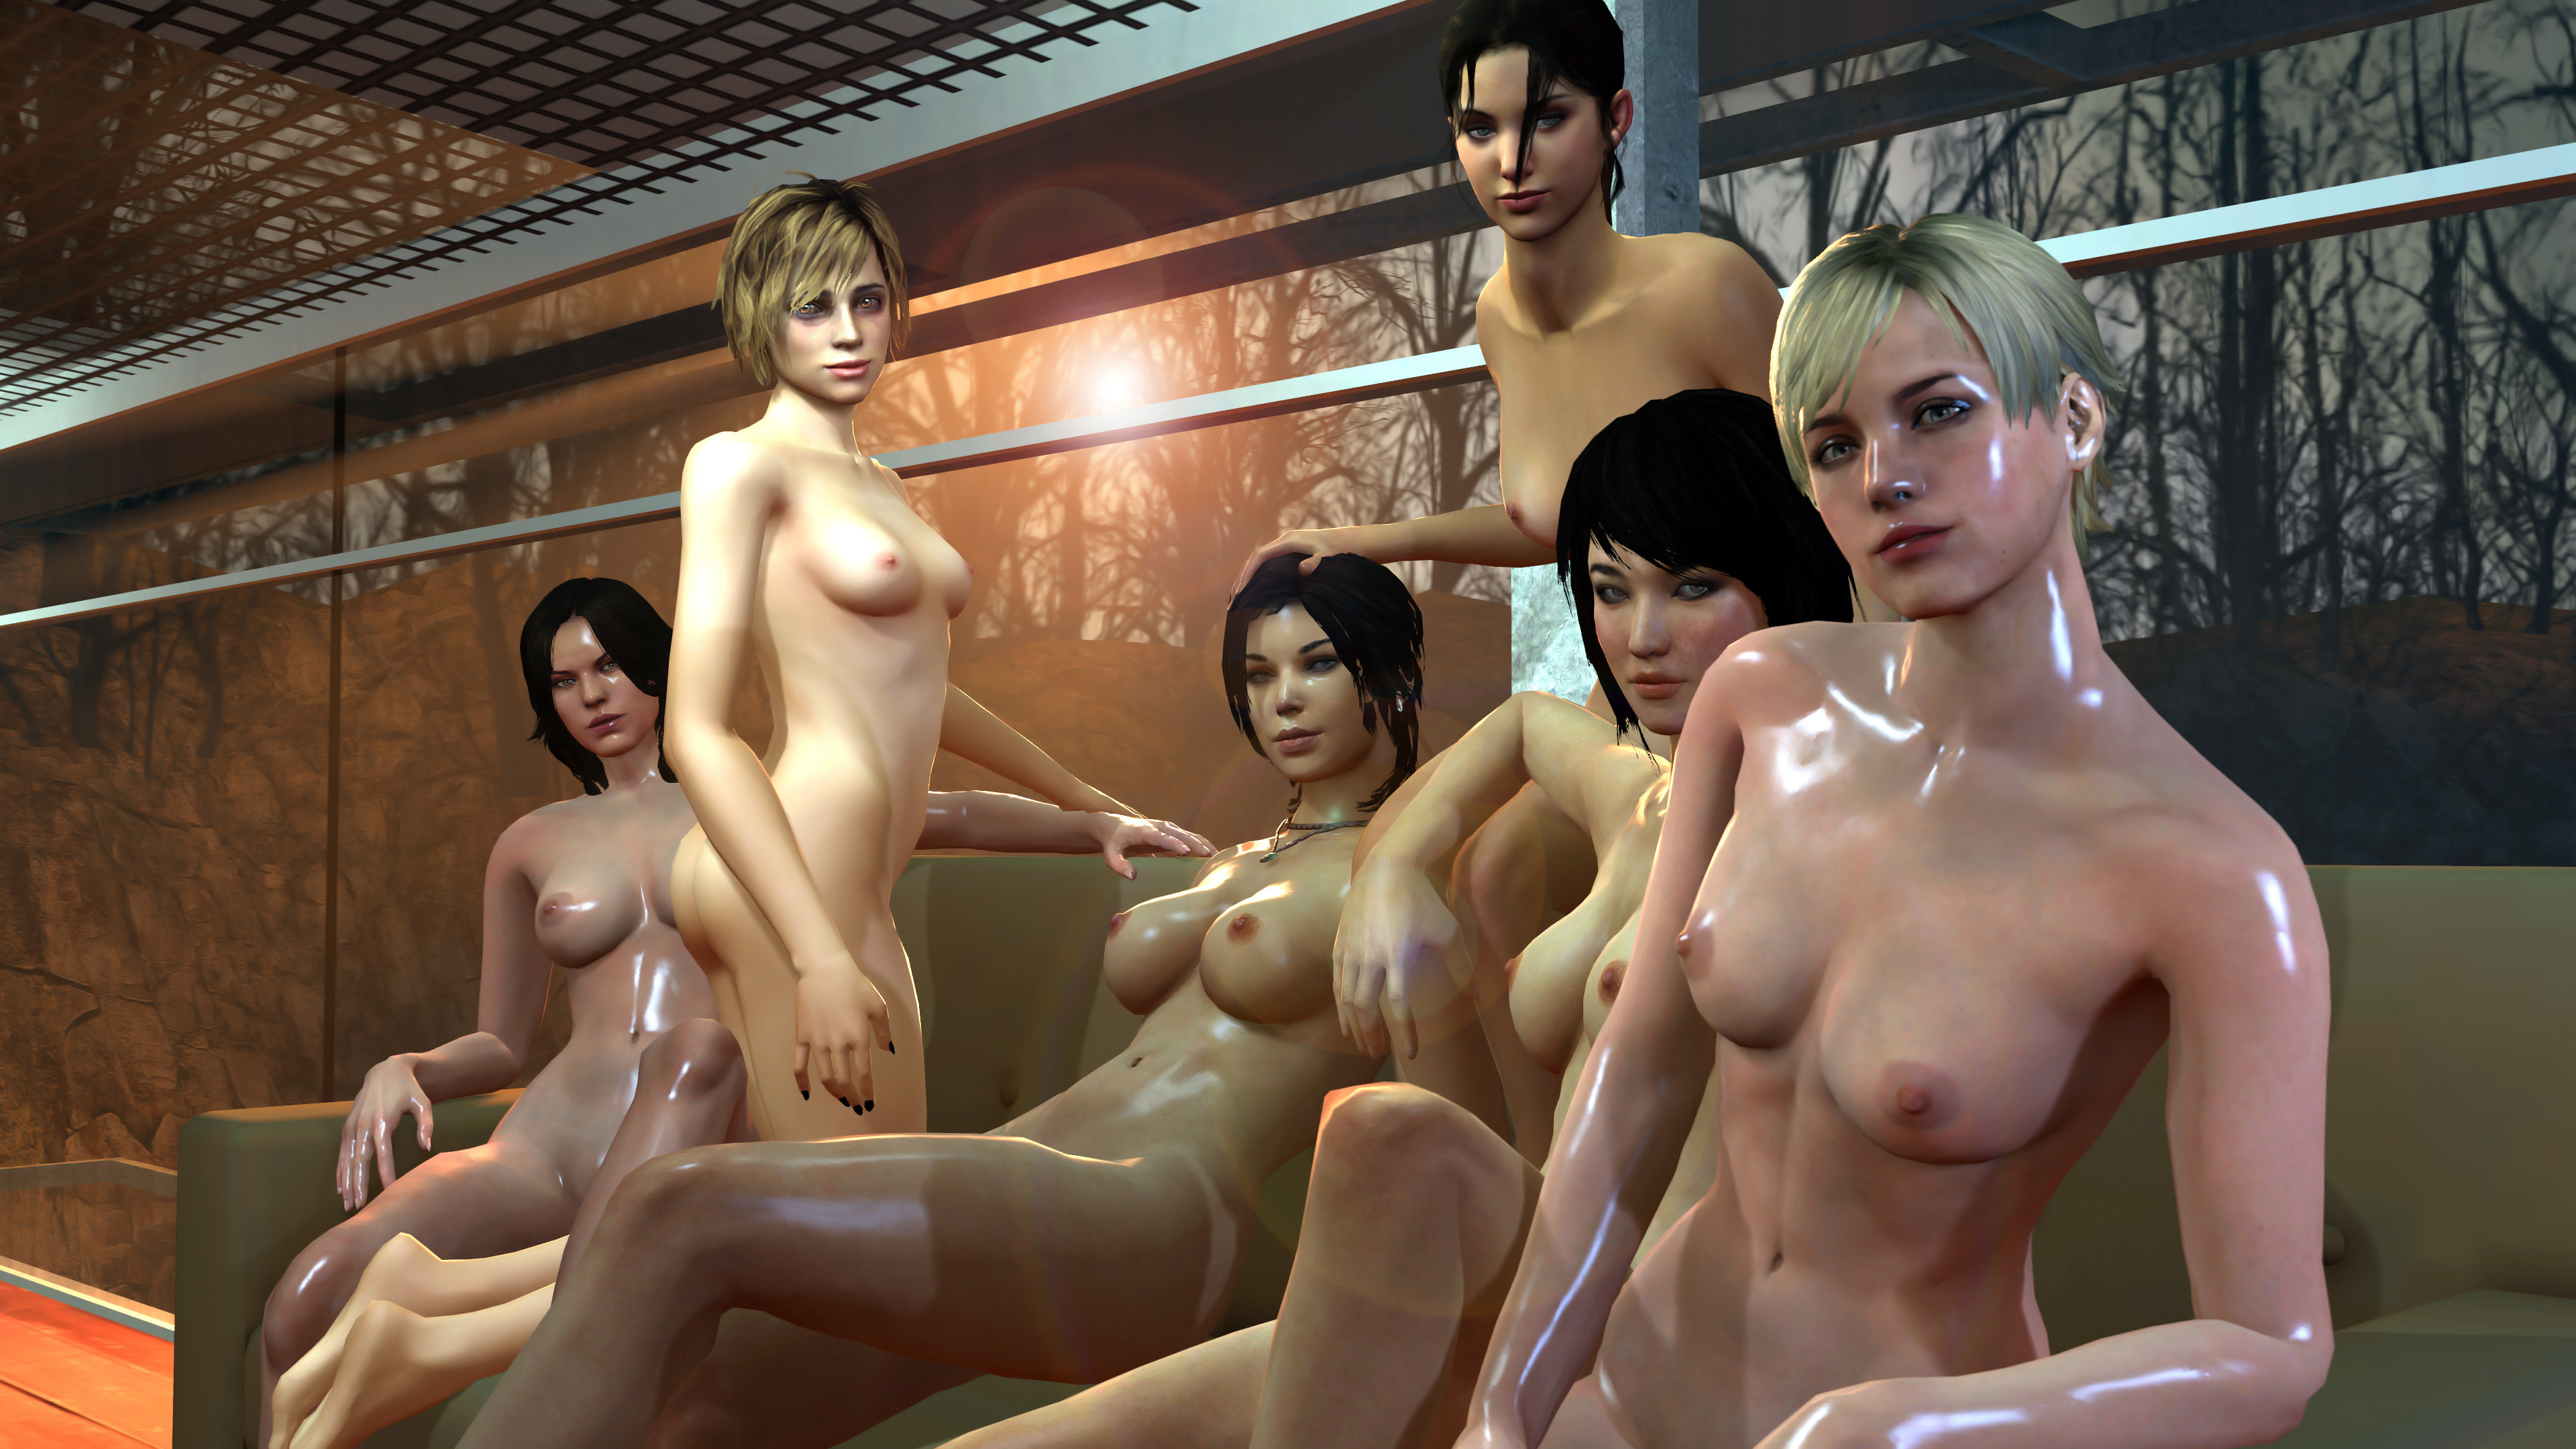 Left4dead hentai video free download hentai gallery